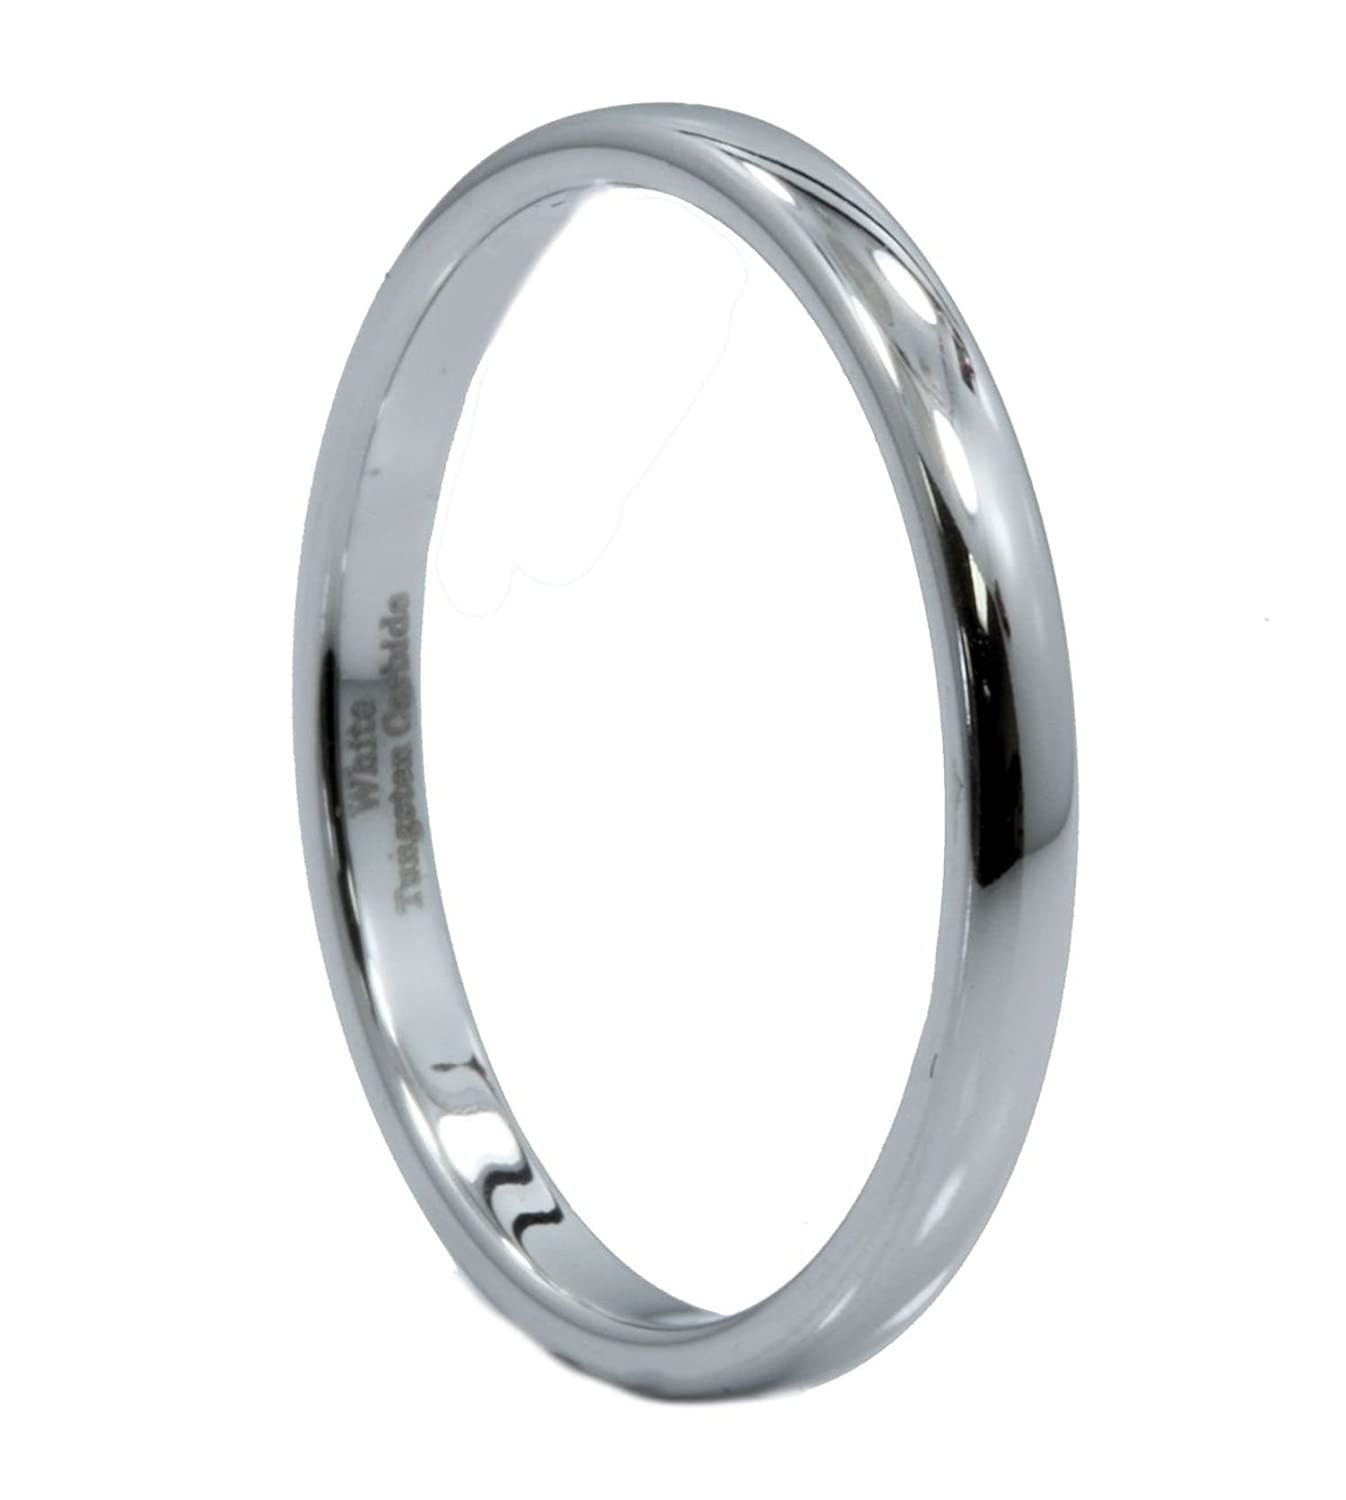 MJ Metals Jewelry 2mm to 10mm White Tungsten Carbide Mirror Polished Classic Wedding Ring WTG-174